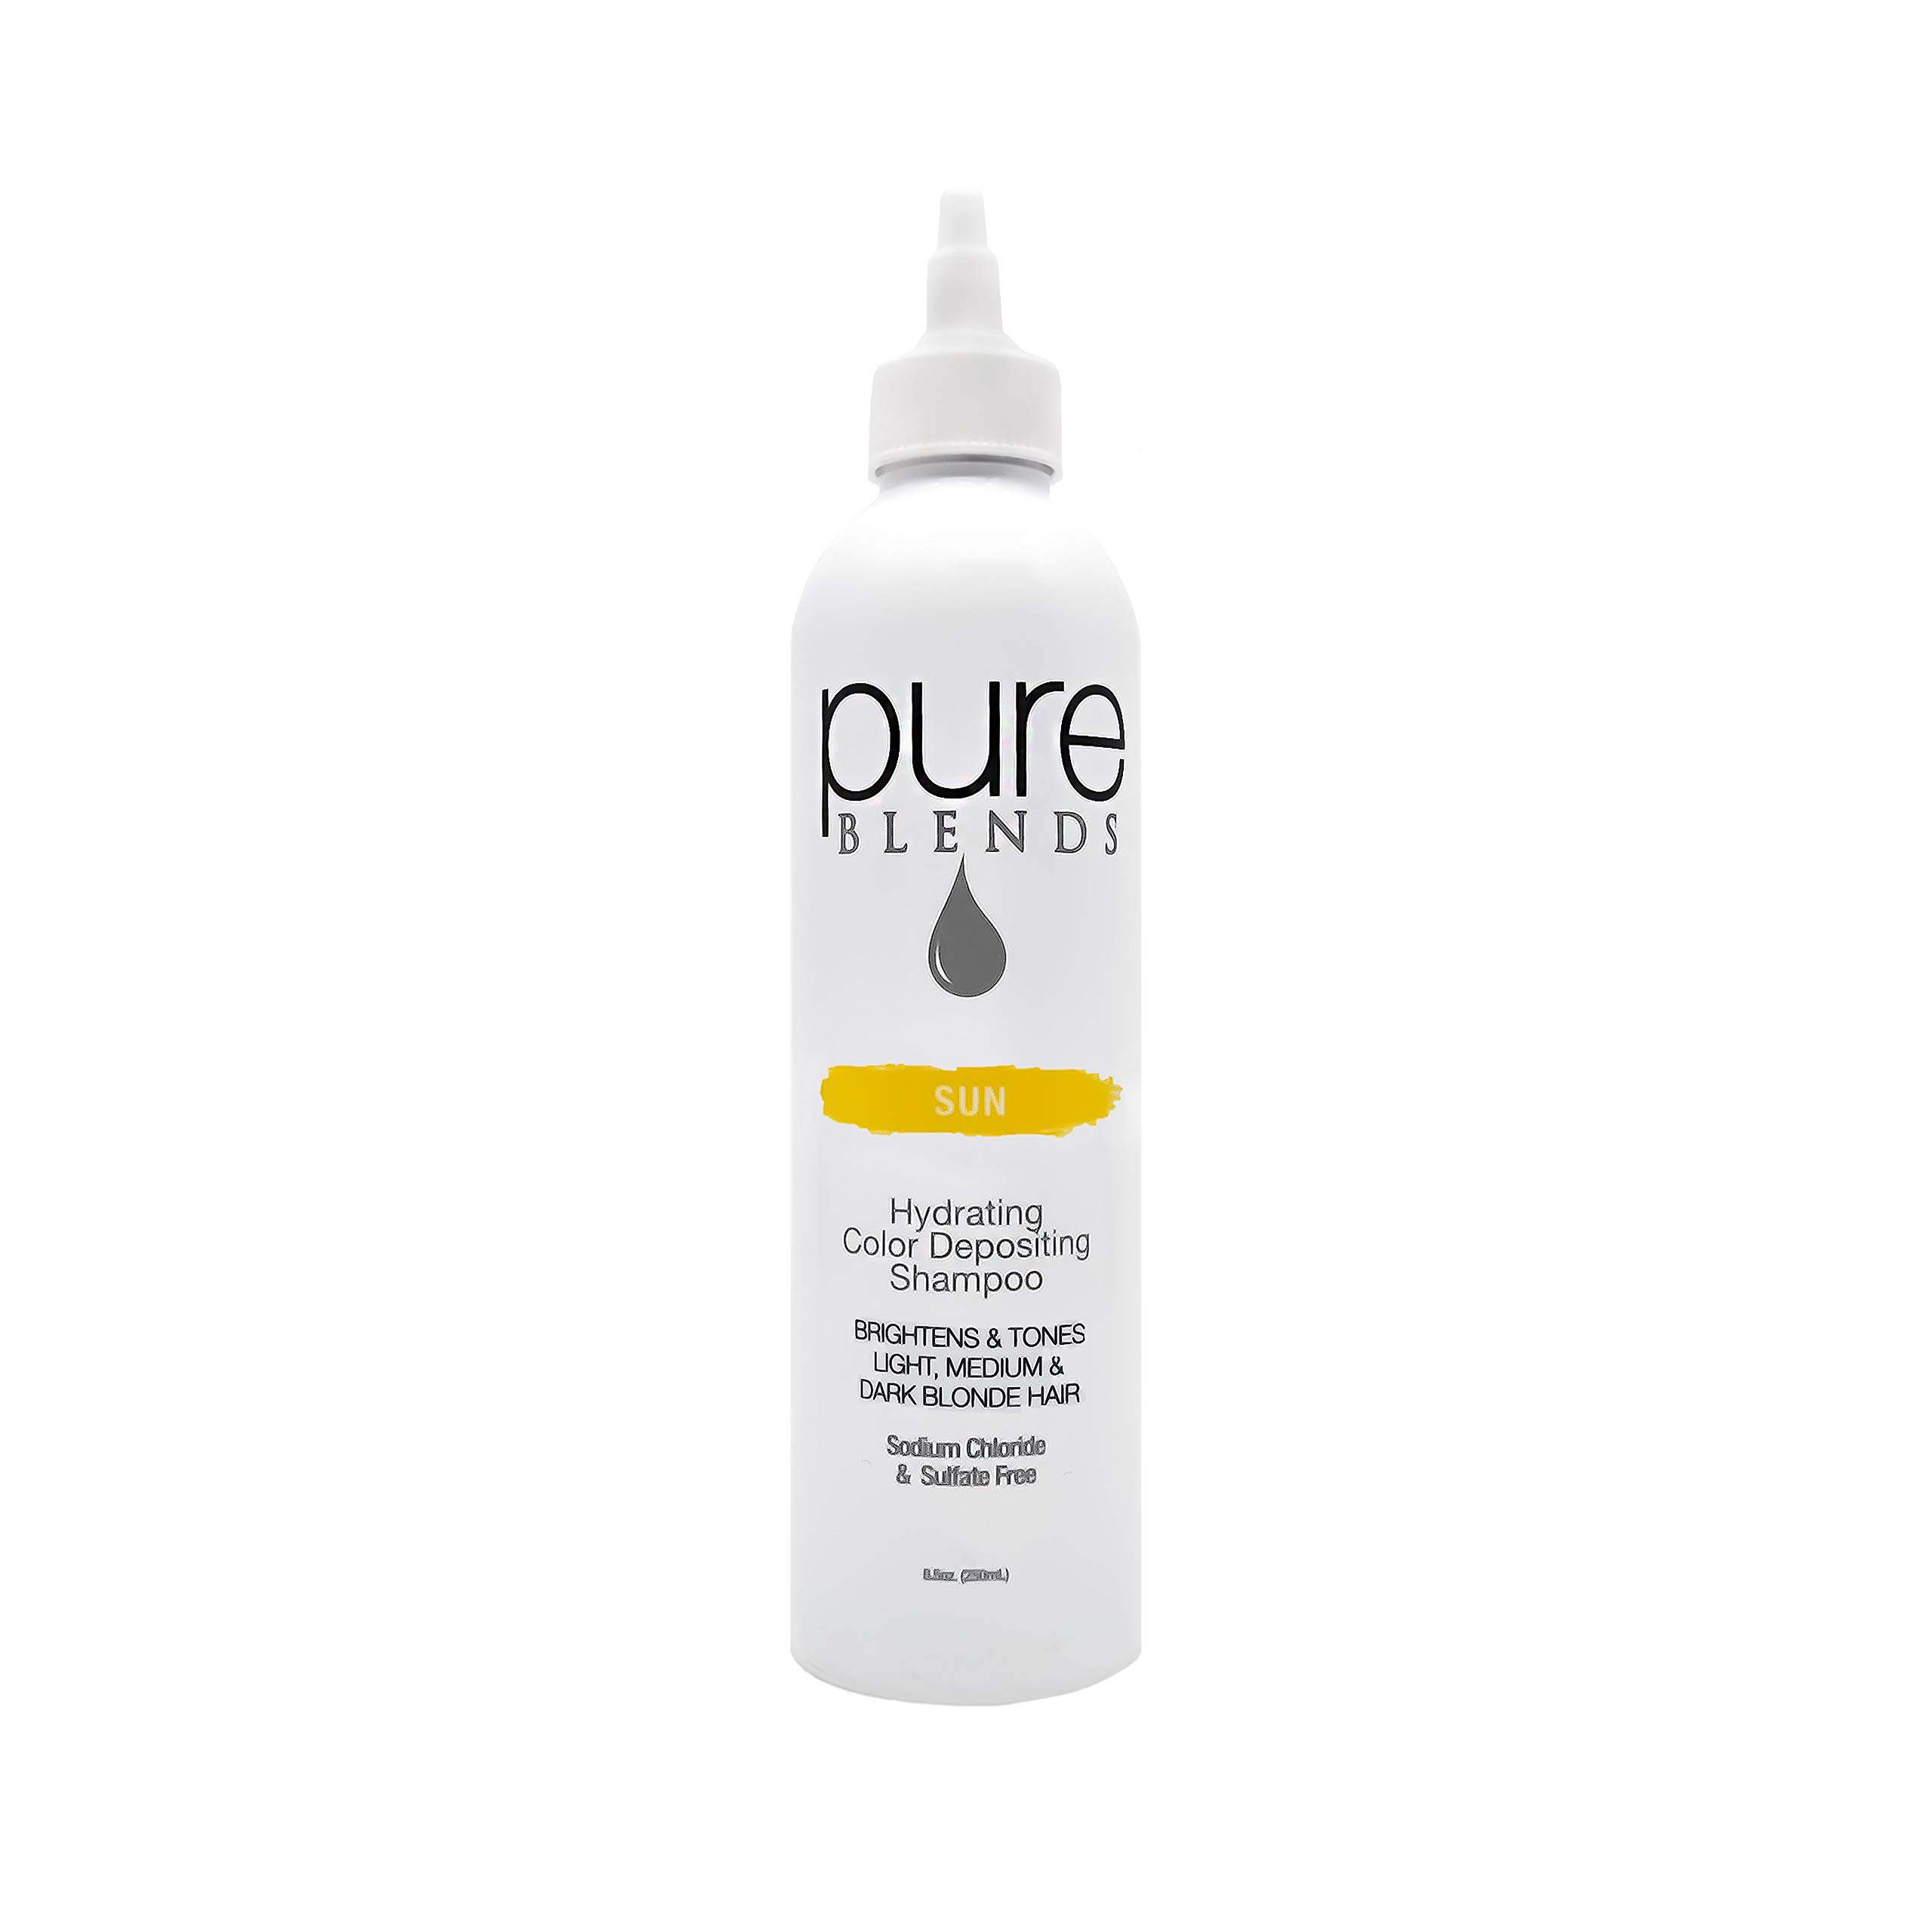 Pure Blends Hydrating Color Depositing Shampoo - Sun (Light, Medium & Dark Blonde) 8.5 Ounce - Salon Quality by Pure Blends